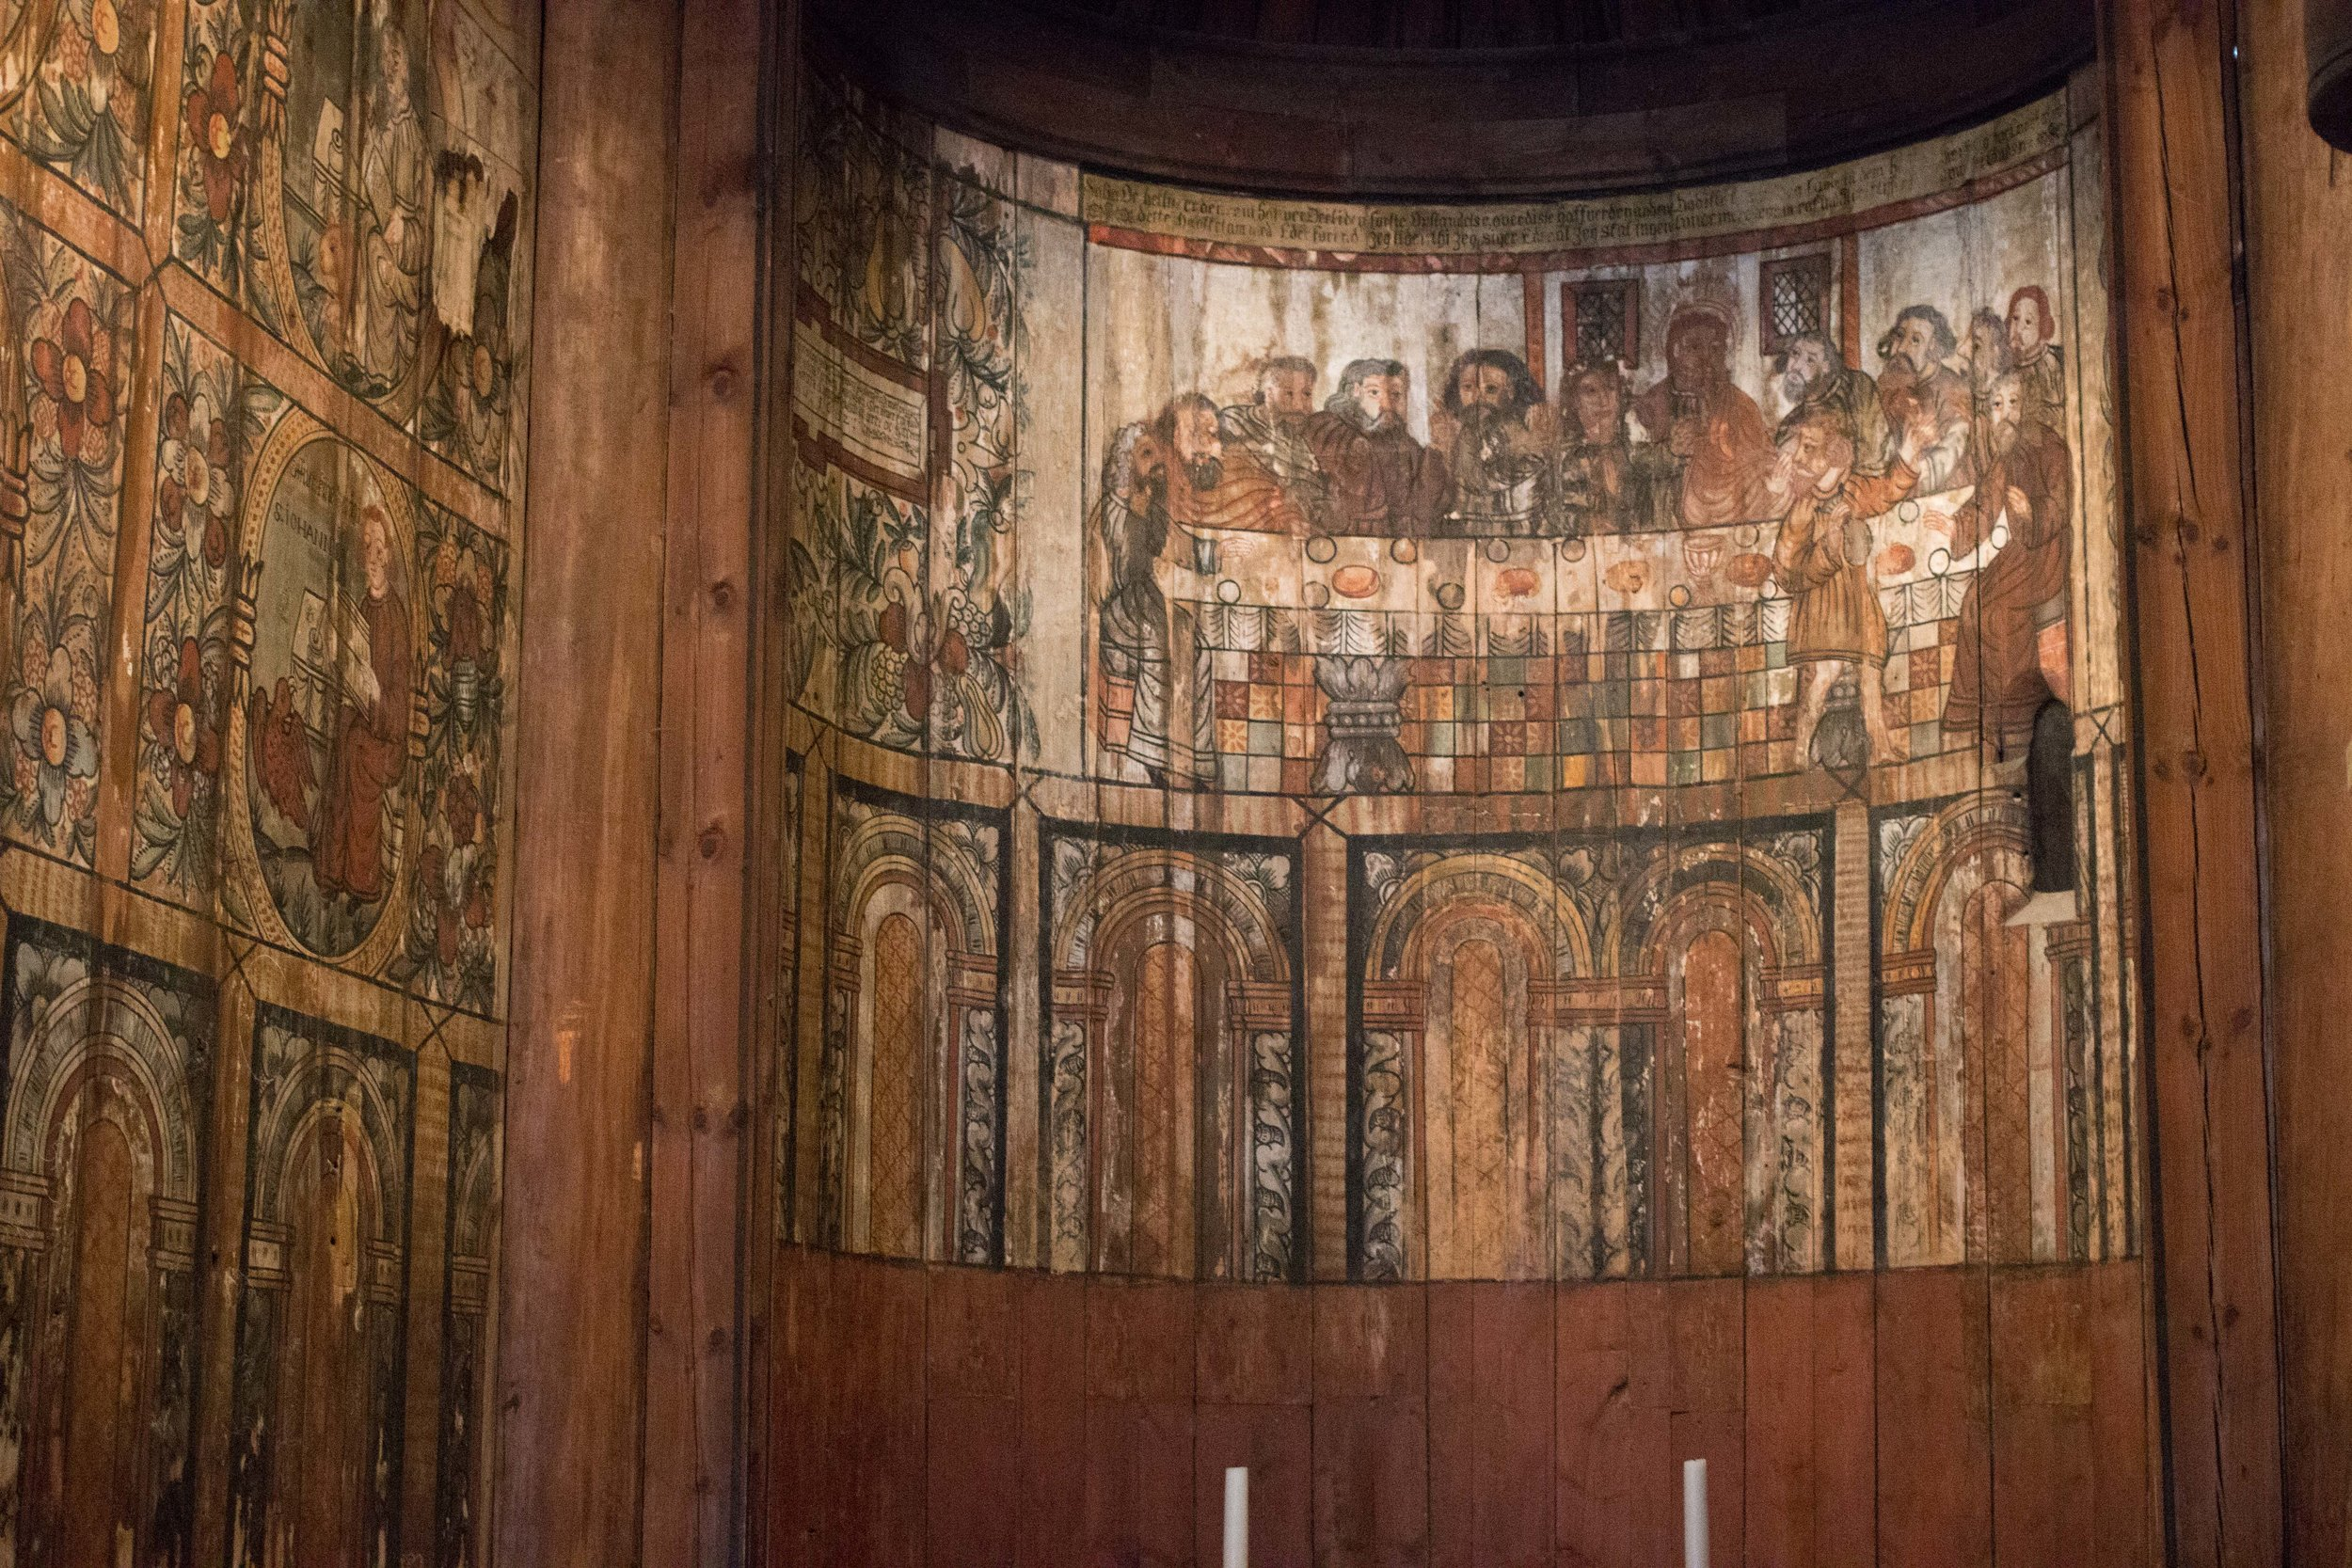 preserved painting inside the stave church in the Norwegian Folk Museum